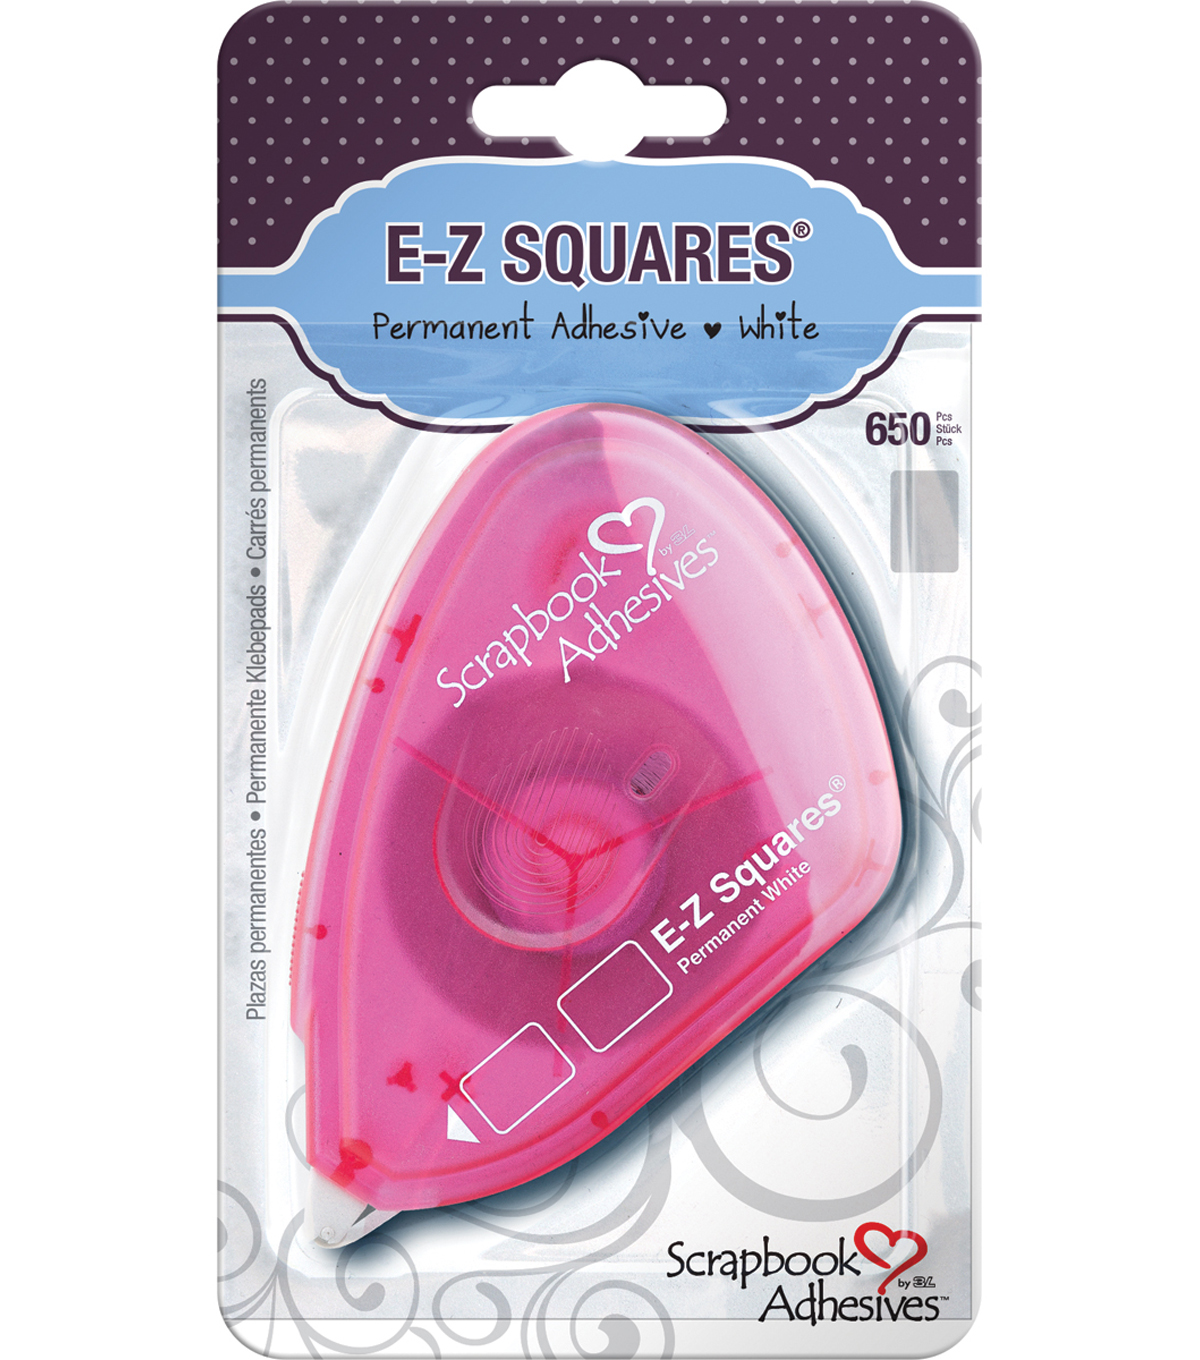 Scrapbook Adhesives E-Z Square Tabs 650/Pkg-Permanent